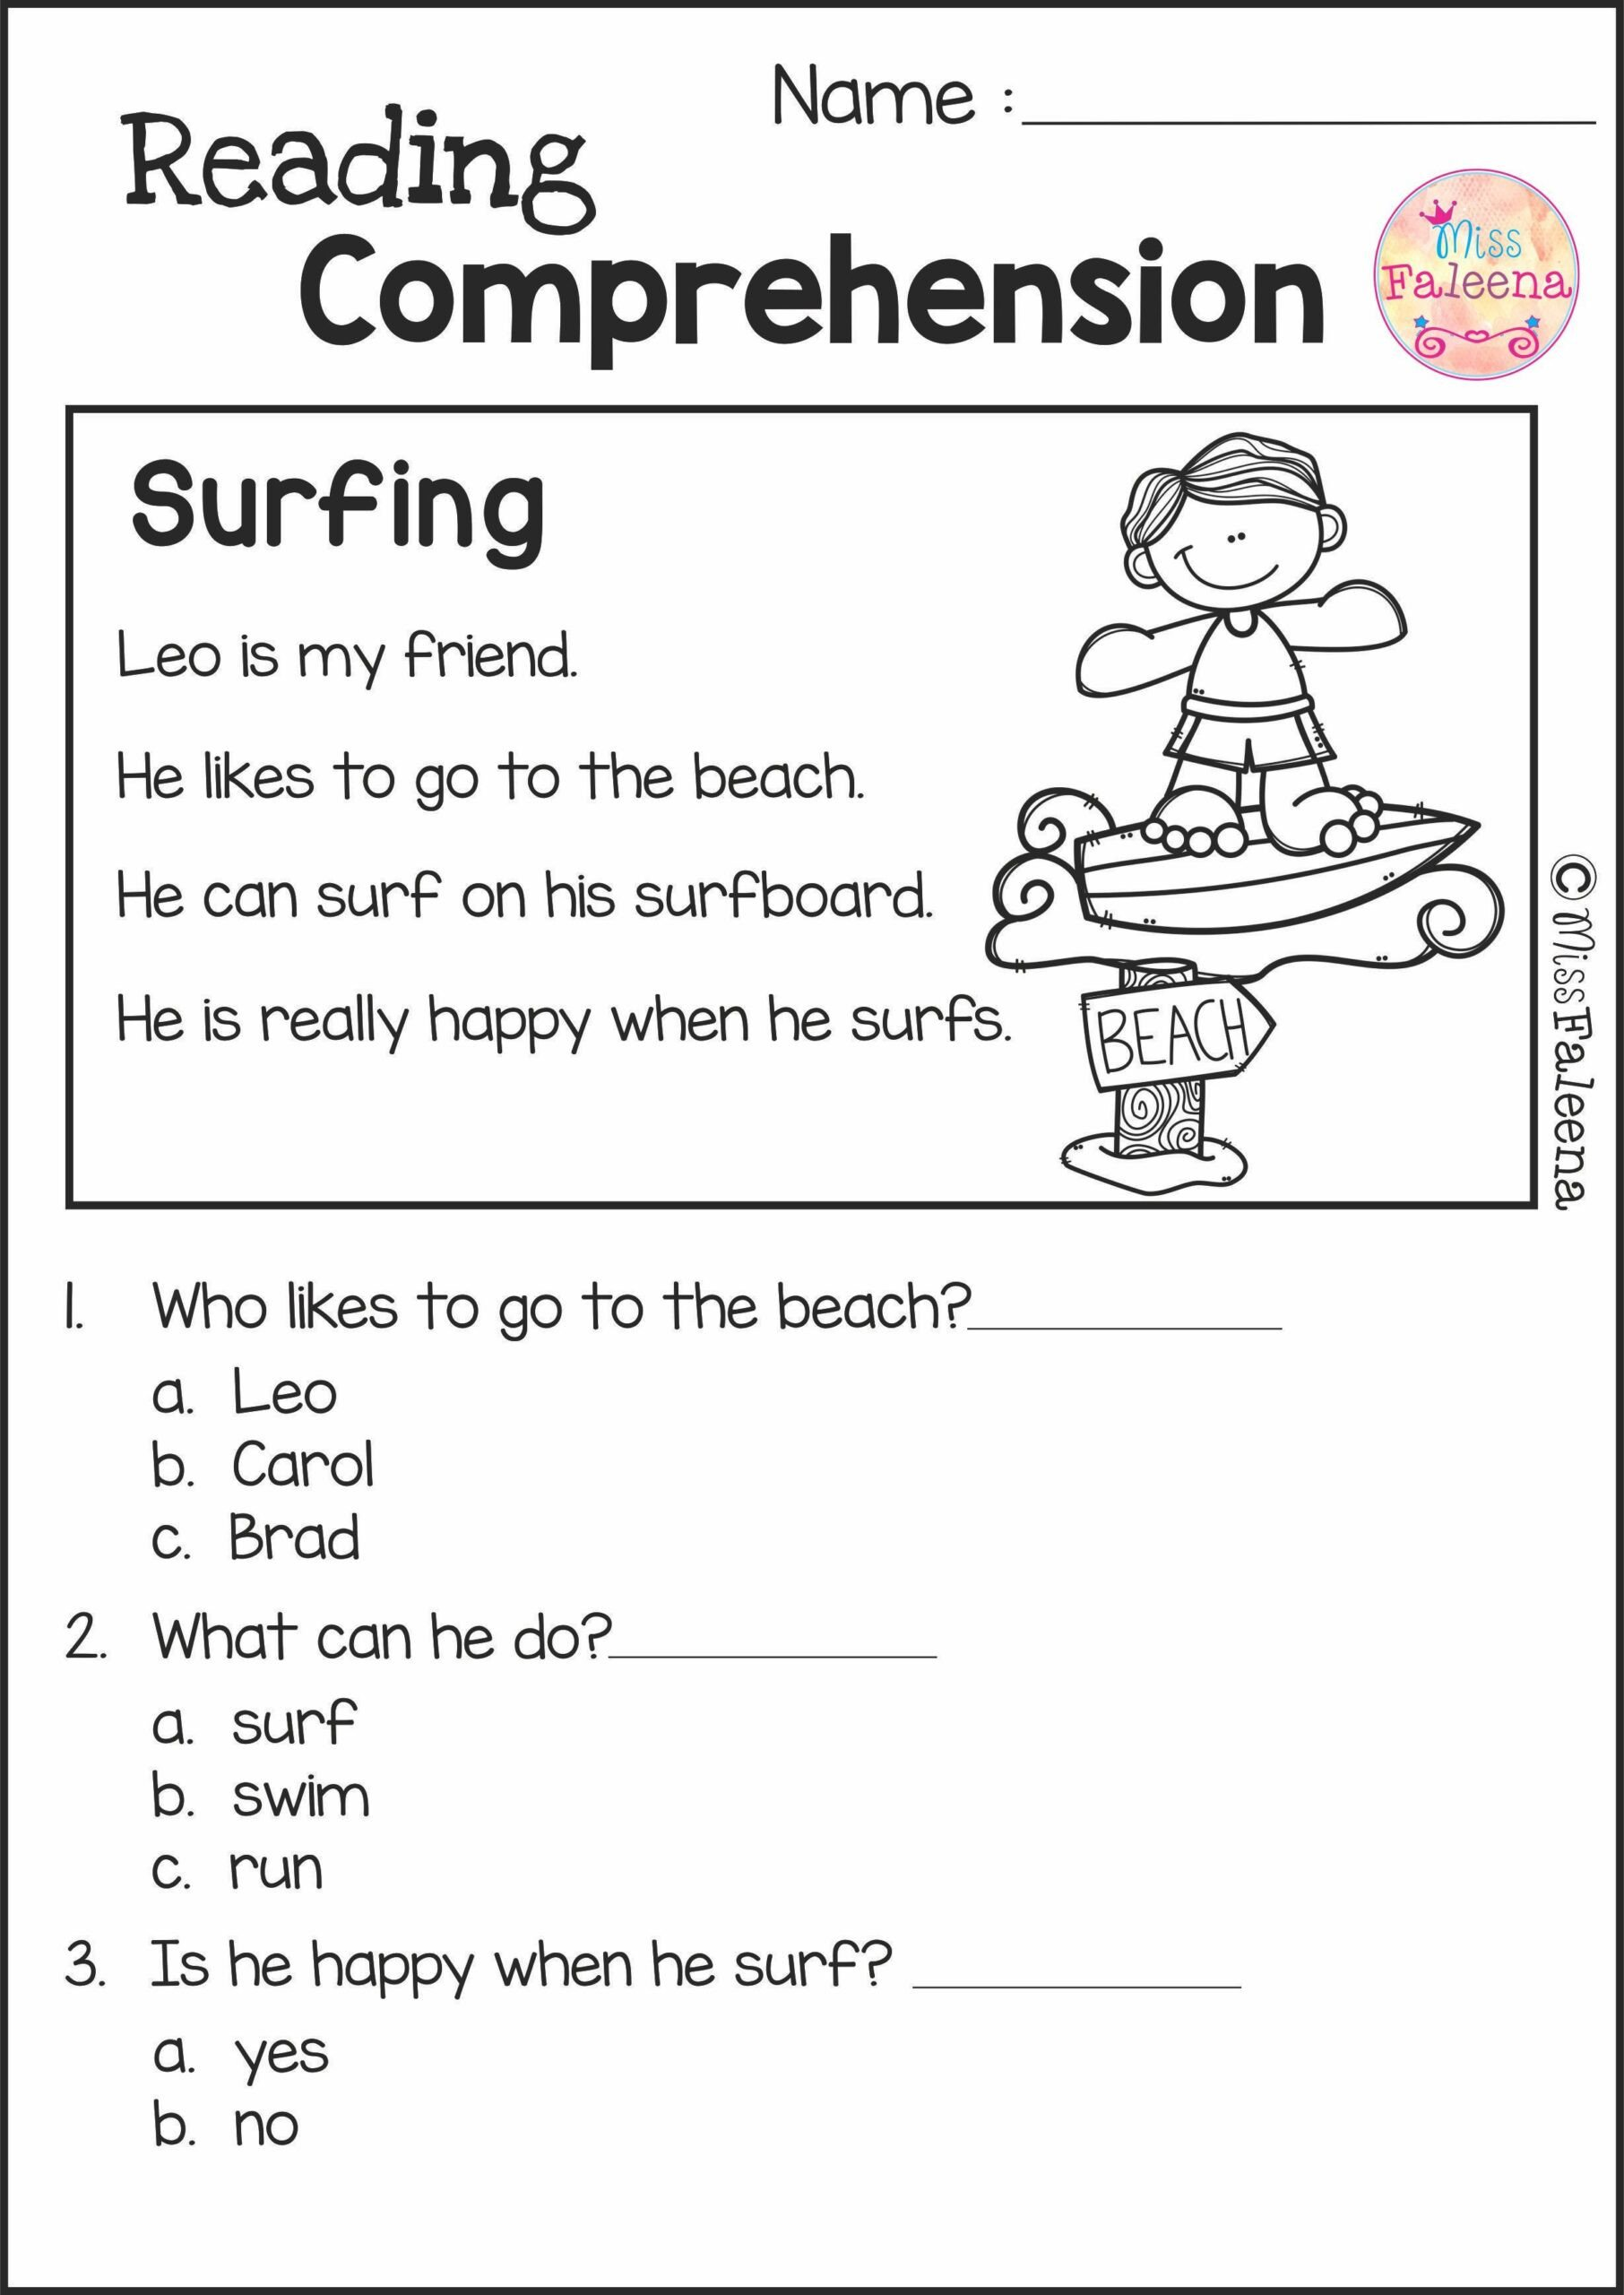 Reading Comprehension Worksheets 7th Grade Reading Prehension Set 2nd Grade Worksheets Get to Know